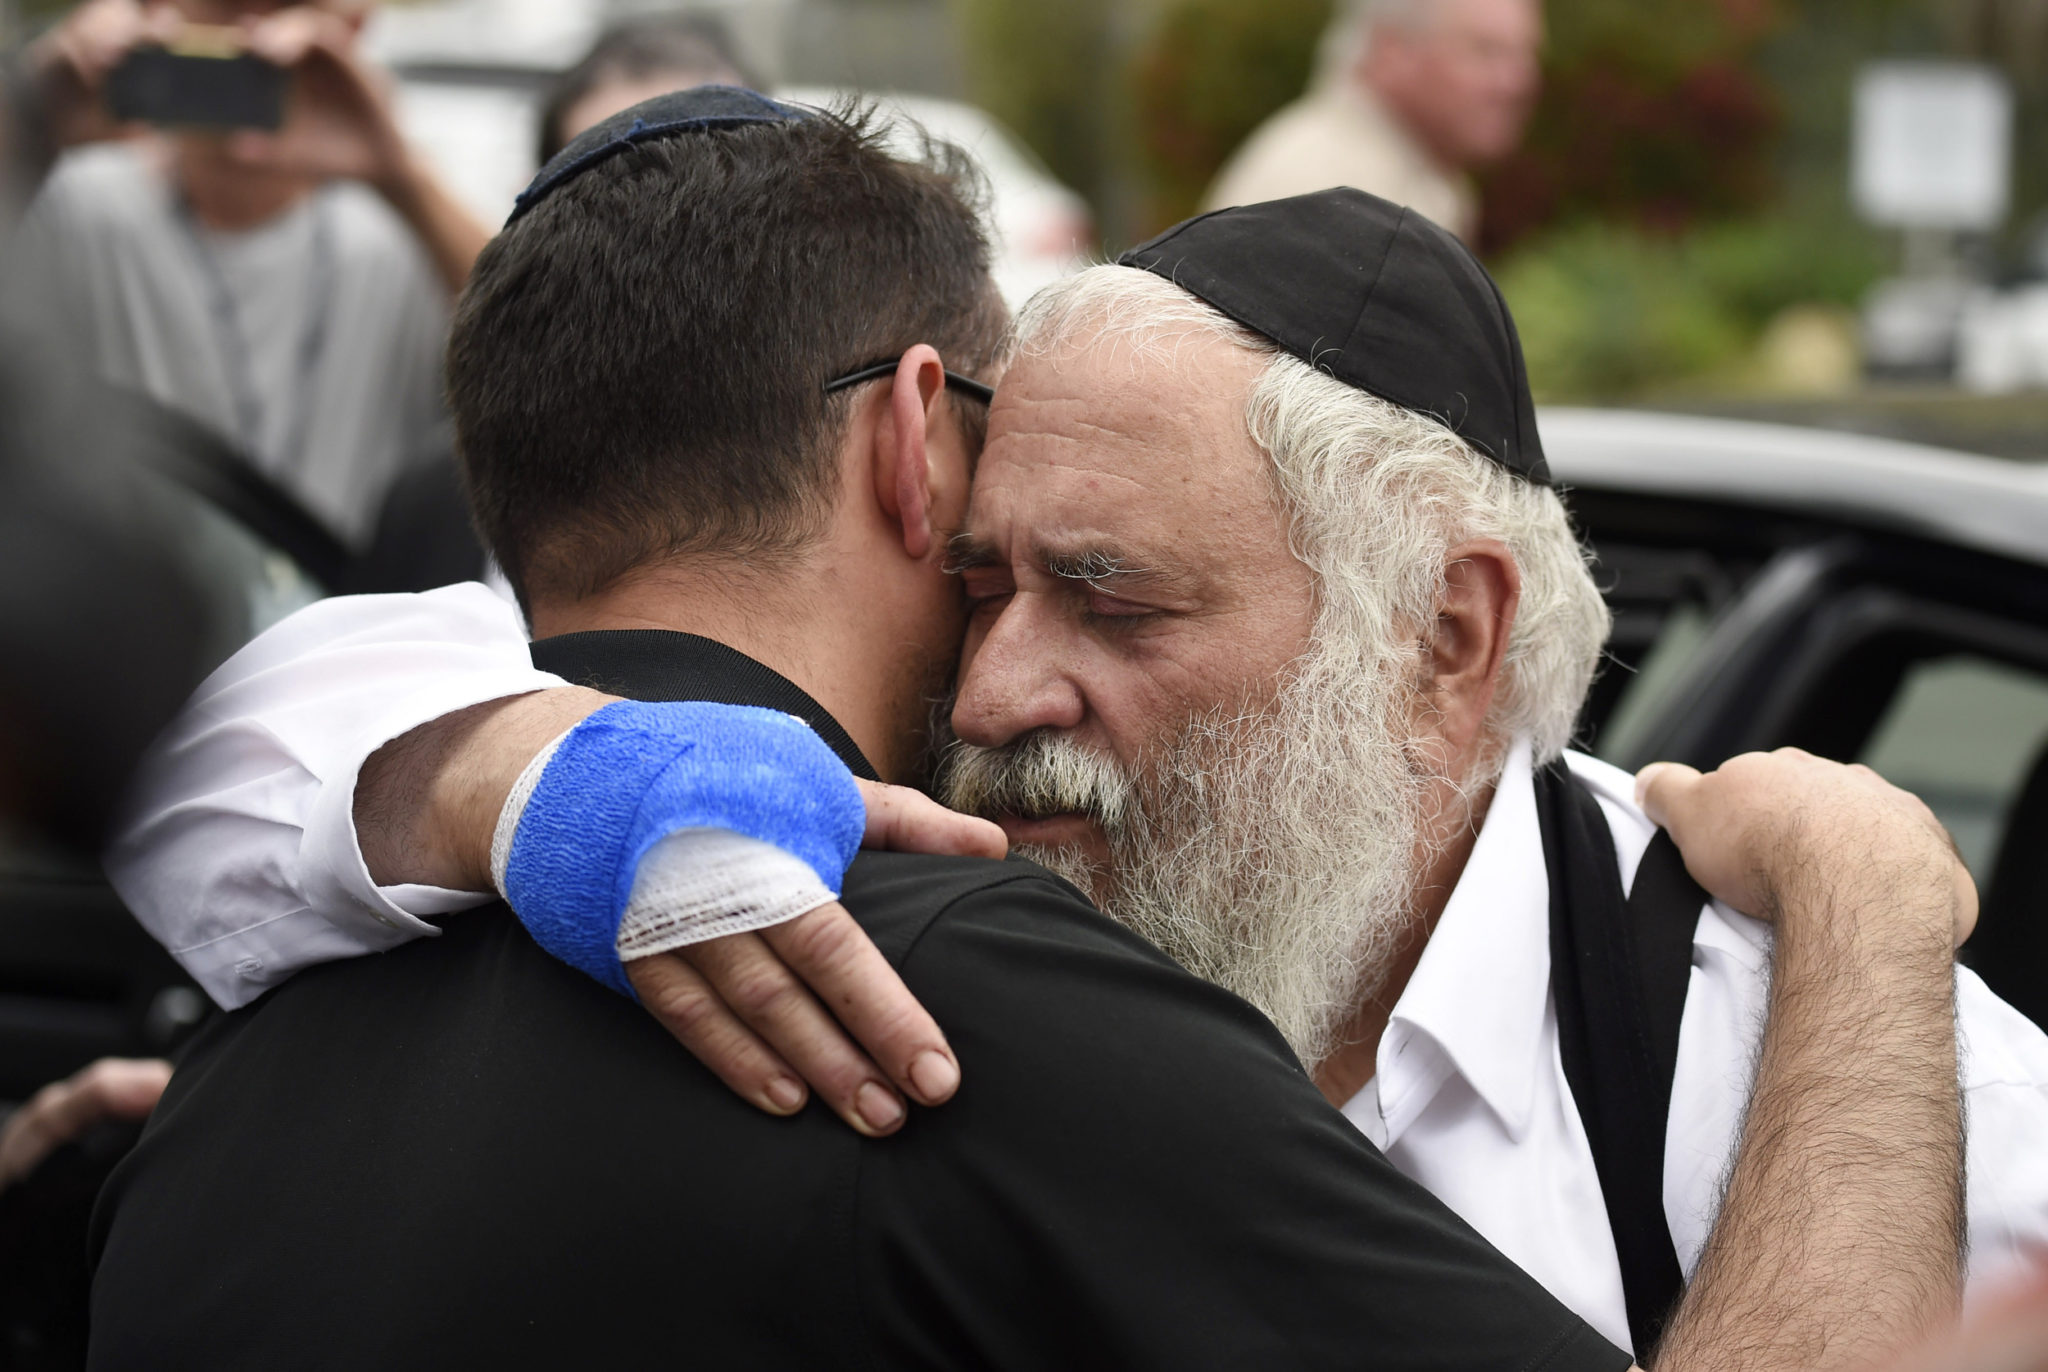 Rabbi says gun 'miraculously jammed' in California attack